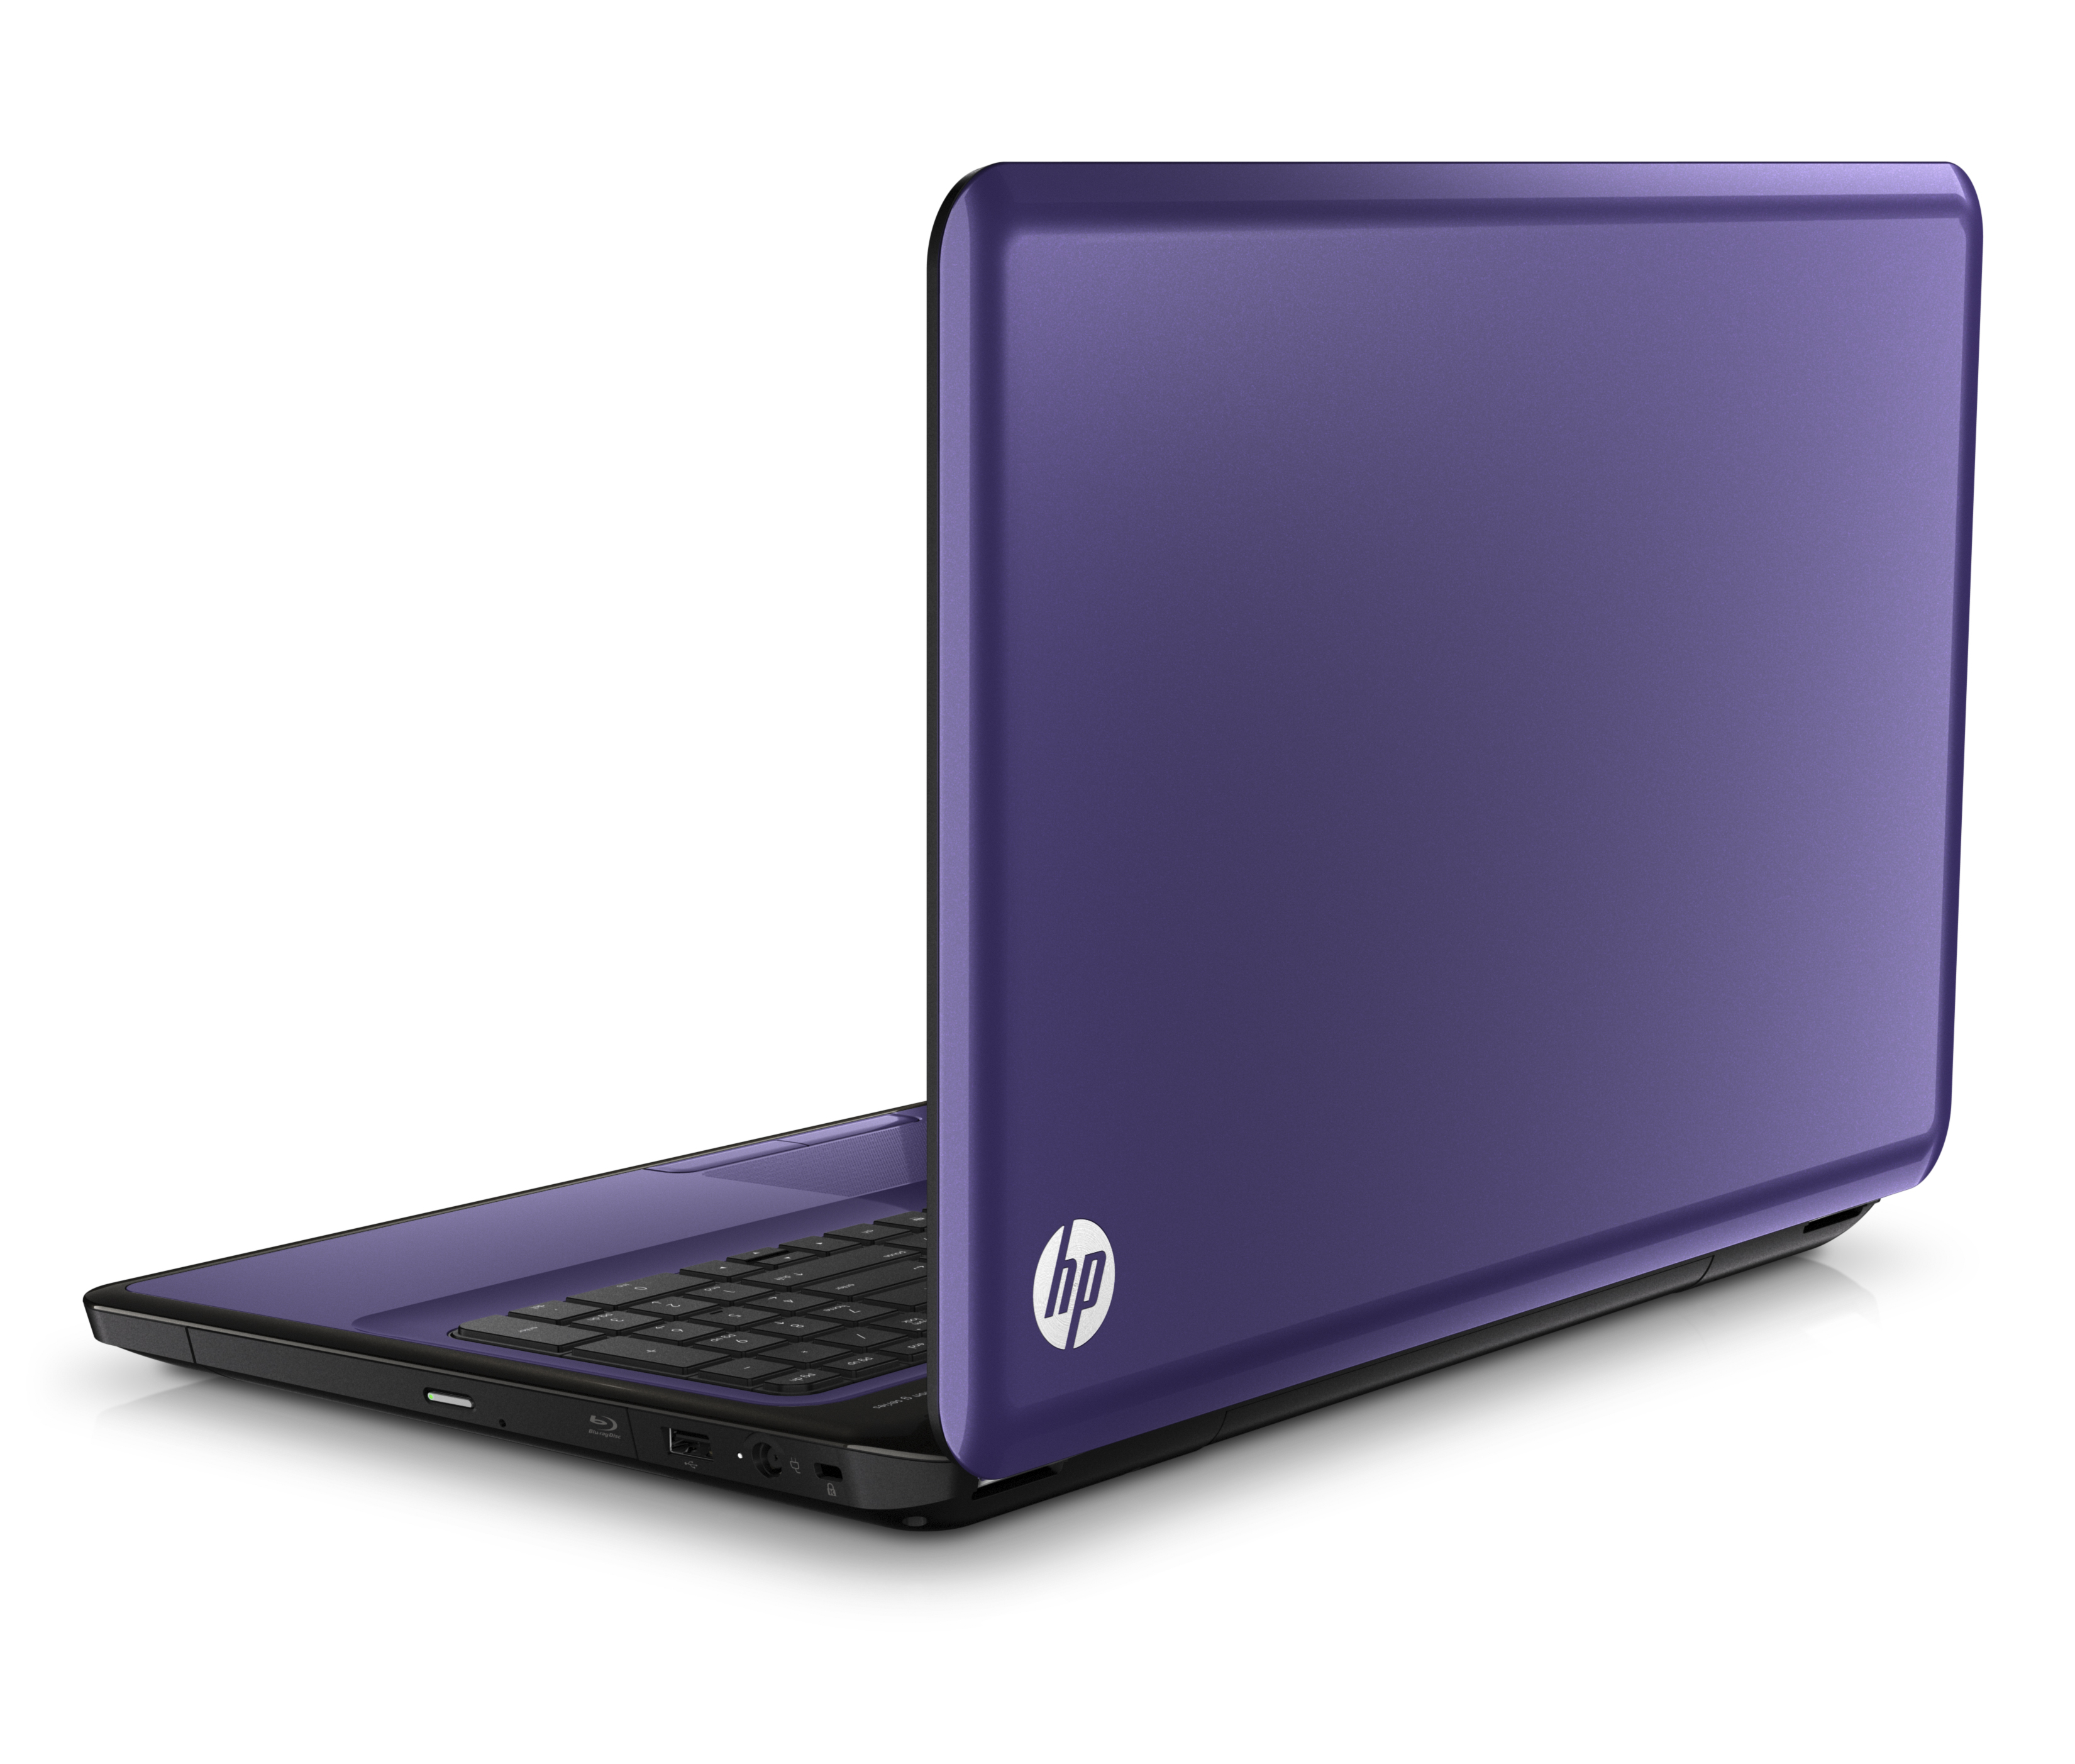 HP Pavilion G Series Announced: G4, G6 and G7 Notebooks Arrive (video)